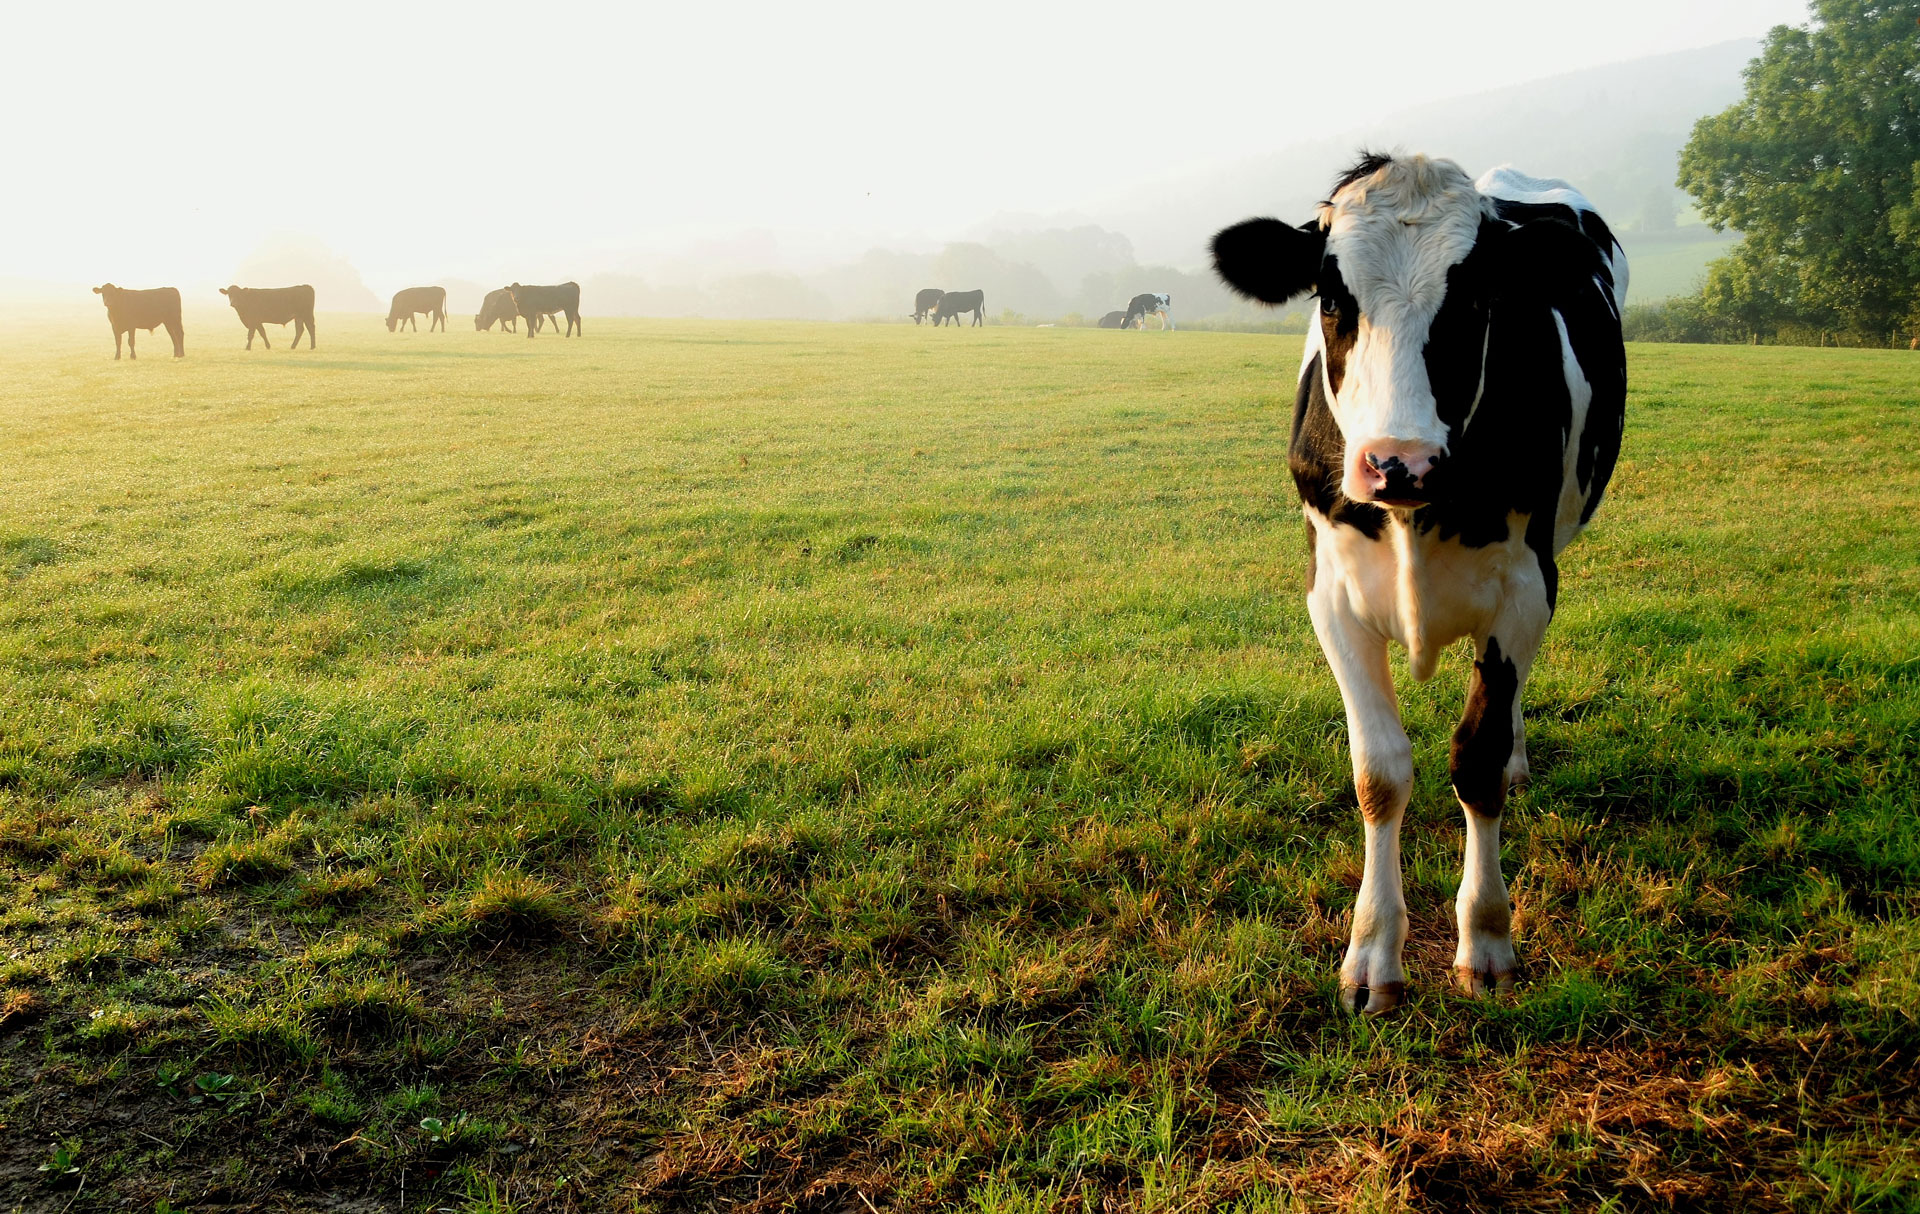 Dairy Production's Impact on Environment, Animals and People | FoodPrint